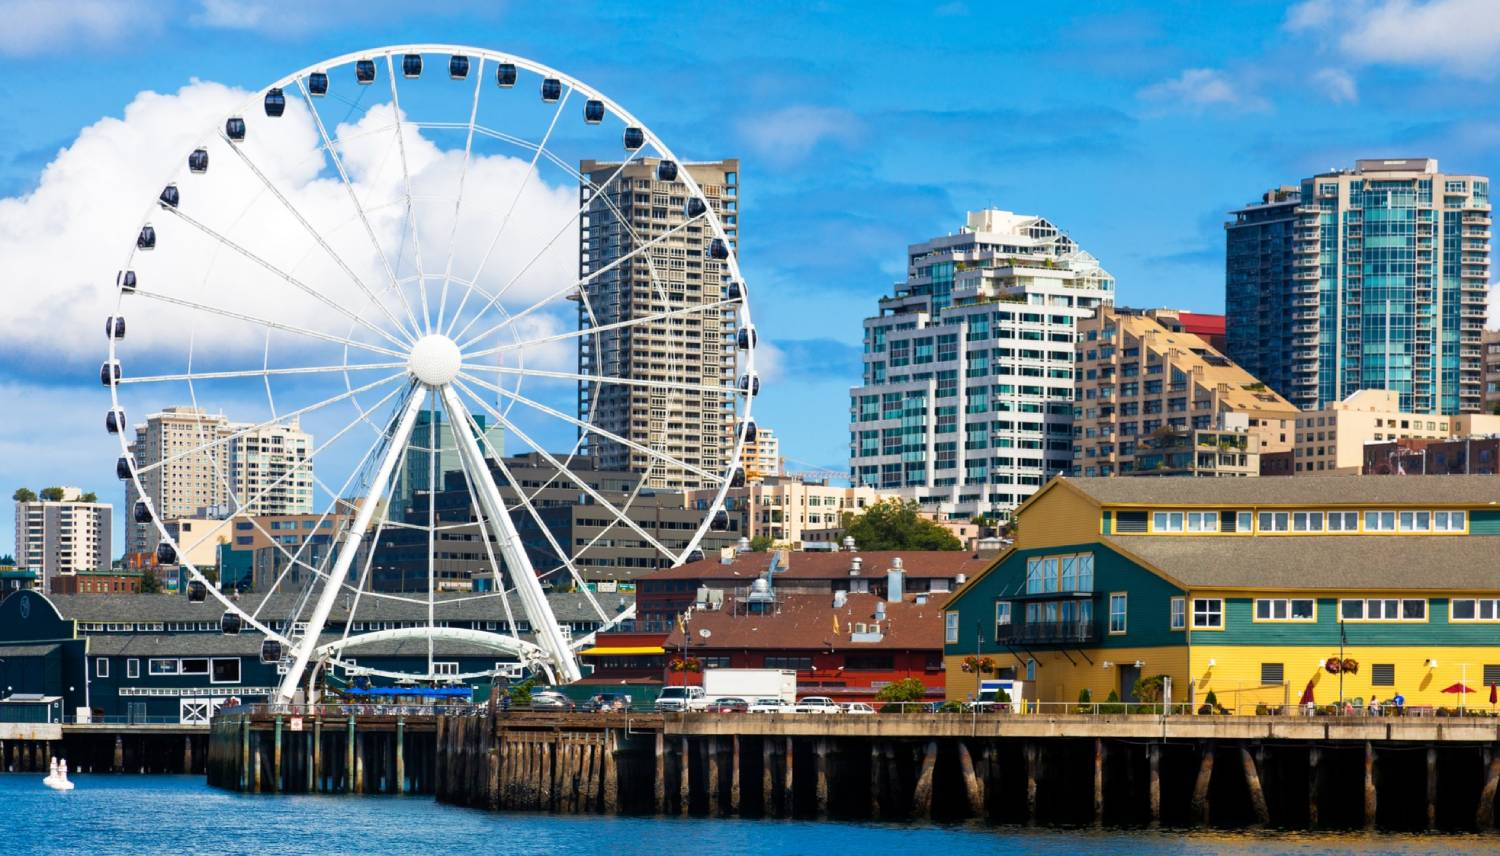 Seattle Great Wheel - Things To Do In Seattle